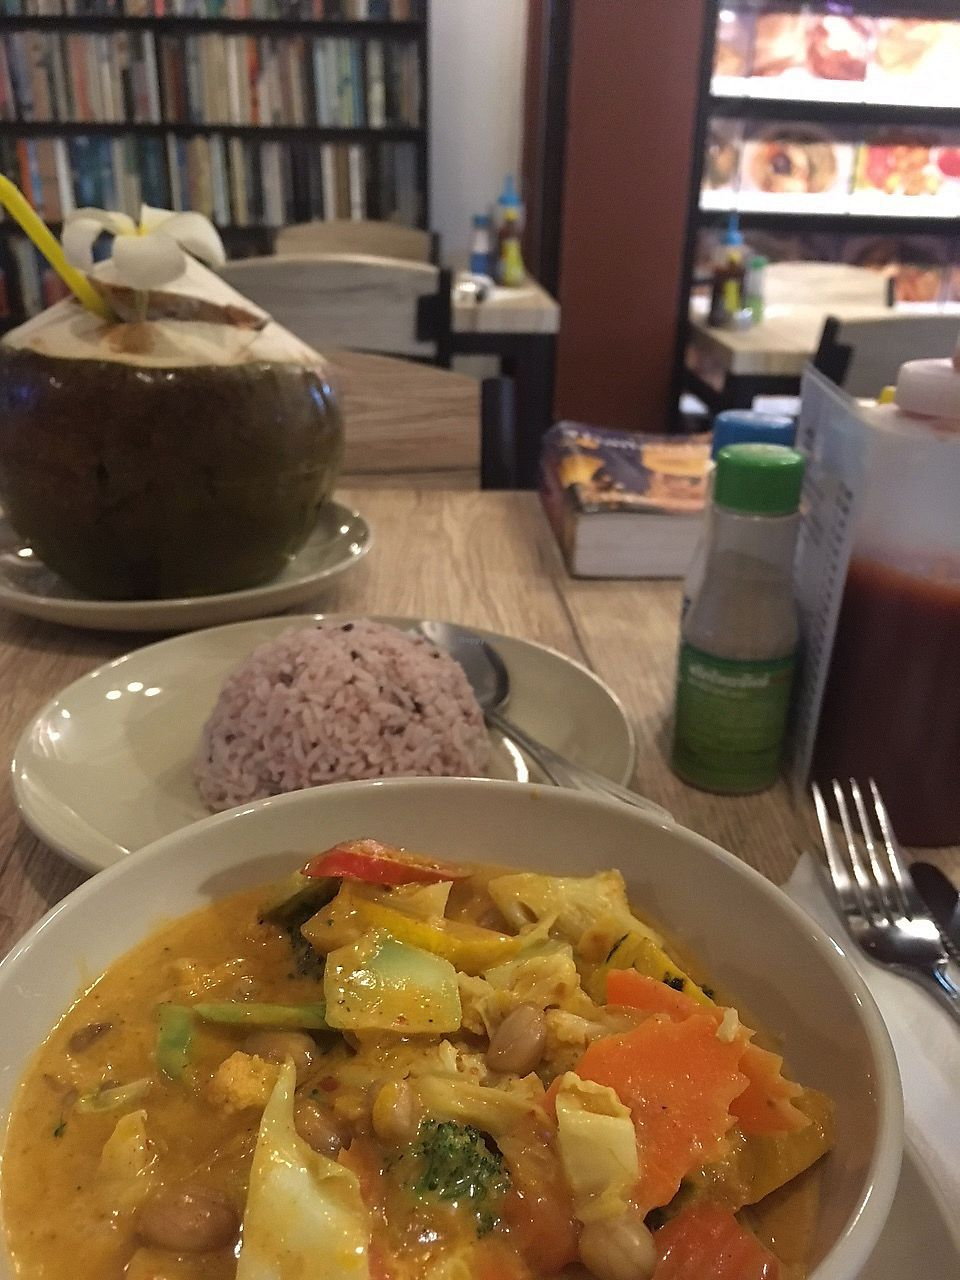 """Photo of Dow Vegetarian Restaurant  by <a href=""""/members/profile/evaPhiPhi"""">evaPhiPhi</a> <br/>Vegetarian Masamam Curry with Pumpkin <br/> August 2, 2017  - <a href='/contact/abuse/image/96395/287890'>Report</a>"""